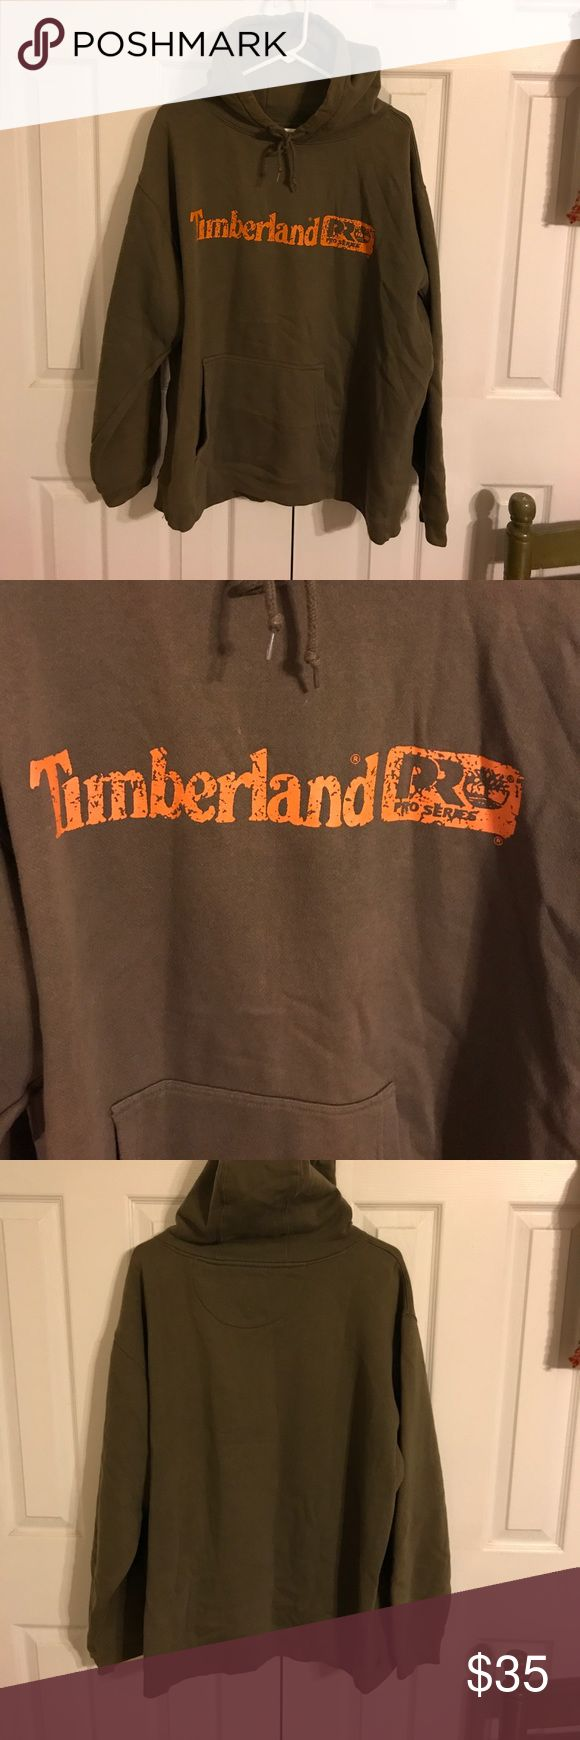 Timberland hoodie size XL Men's Timberland extra large hoodie tannish brown with timberland an orange font ProSeries. This is mine and only worn a few times in good condition. Timberland Jackets & Coats Lightweight & Shirt Jackets